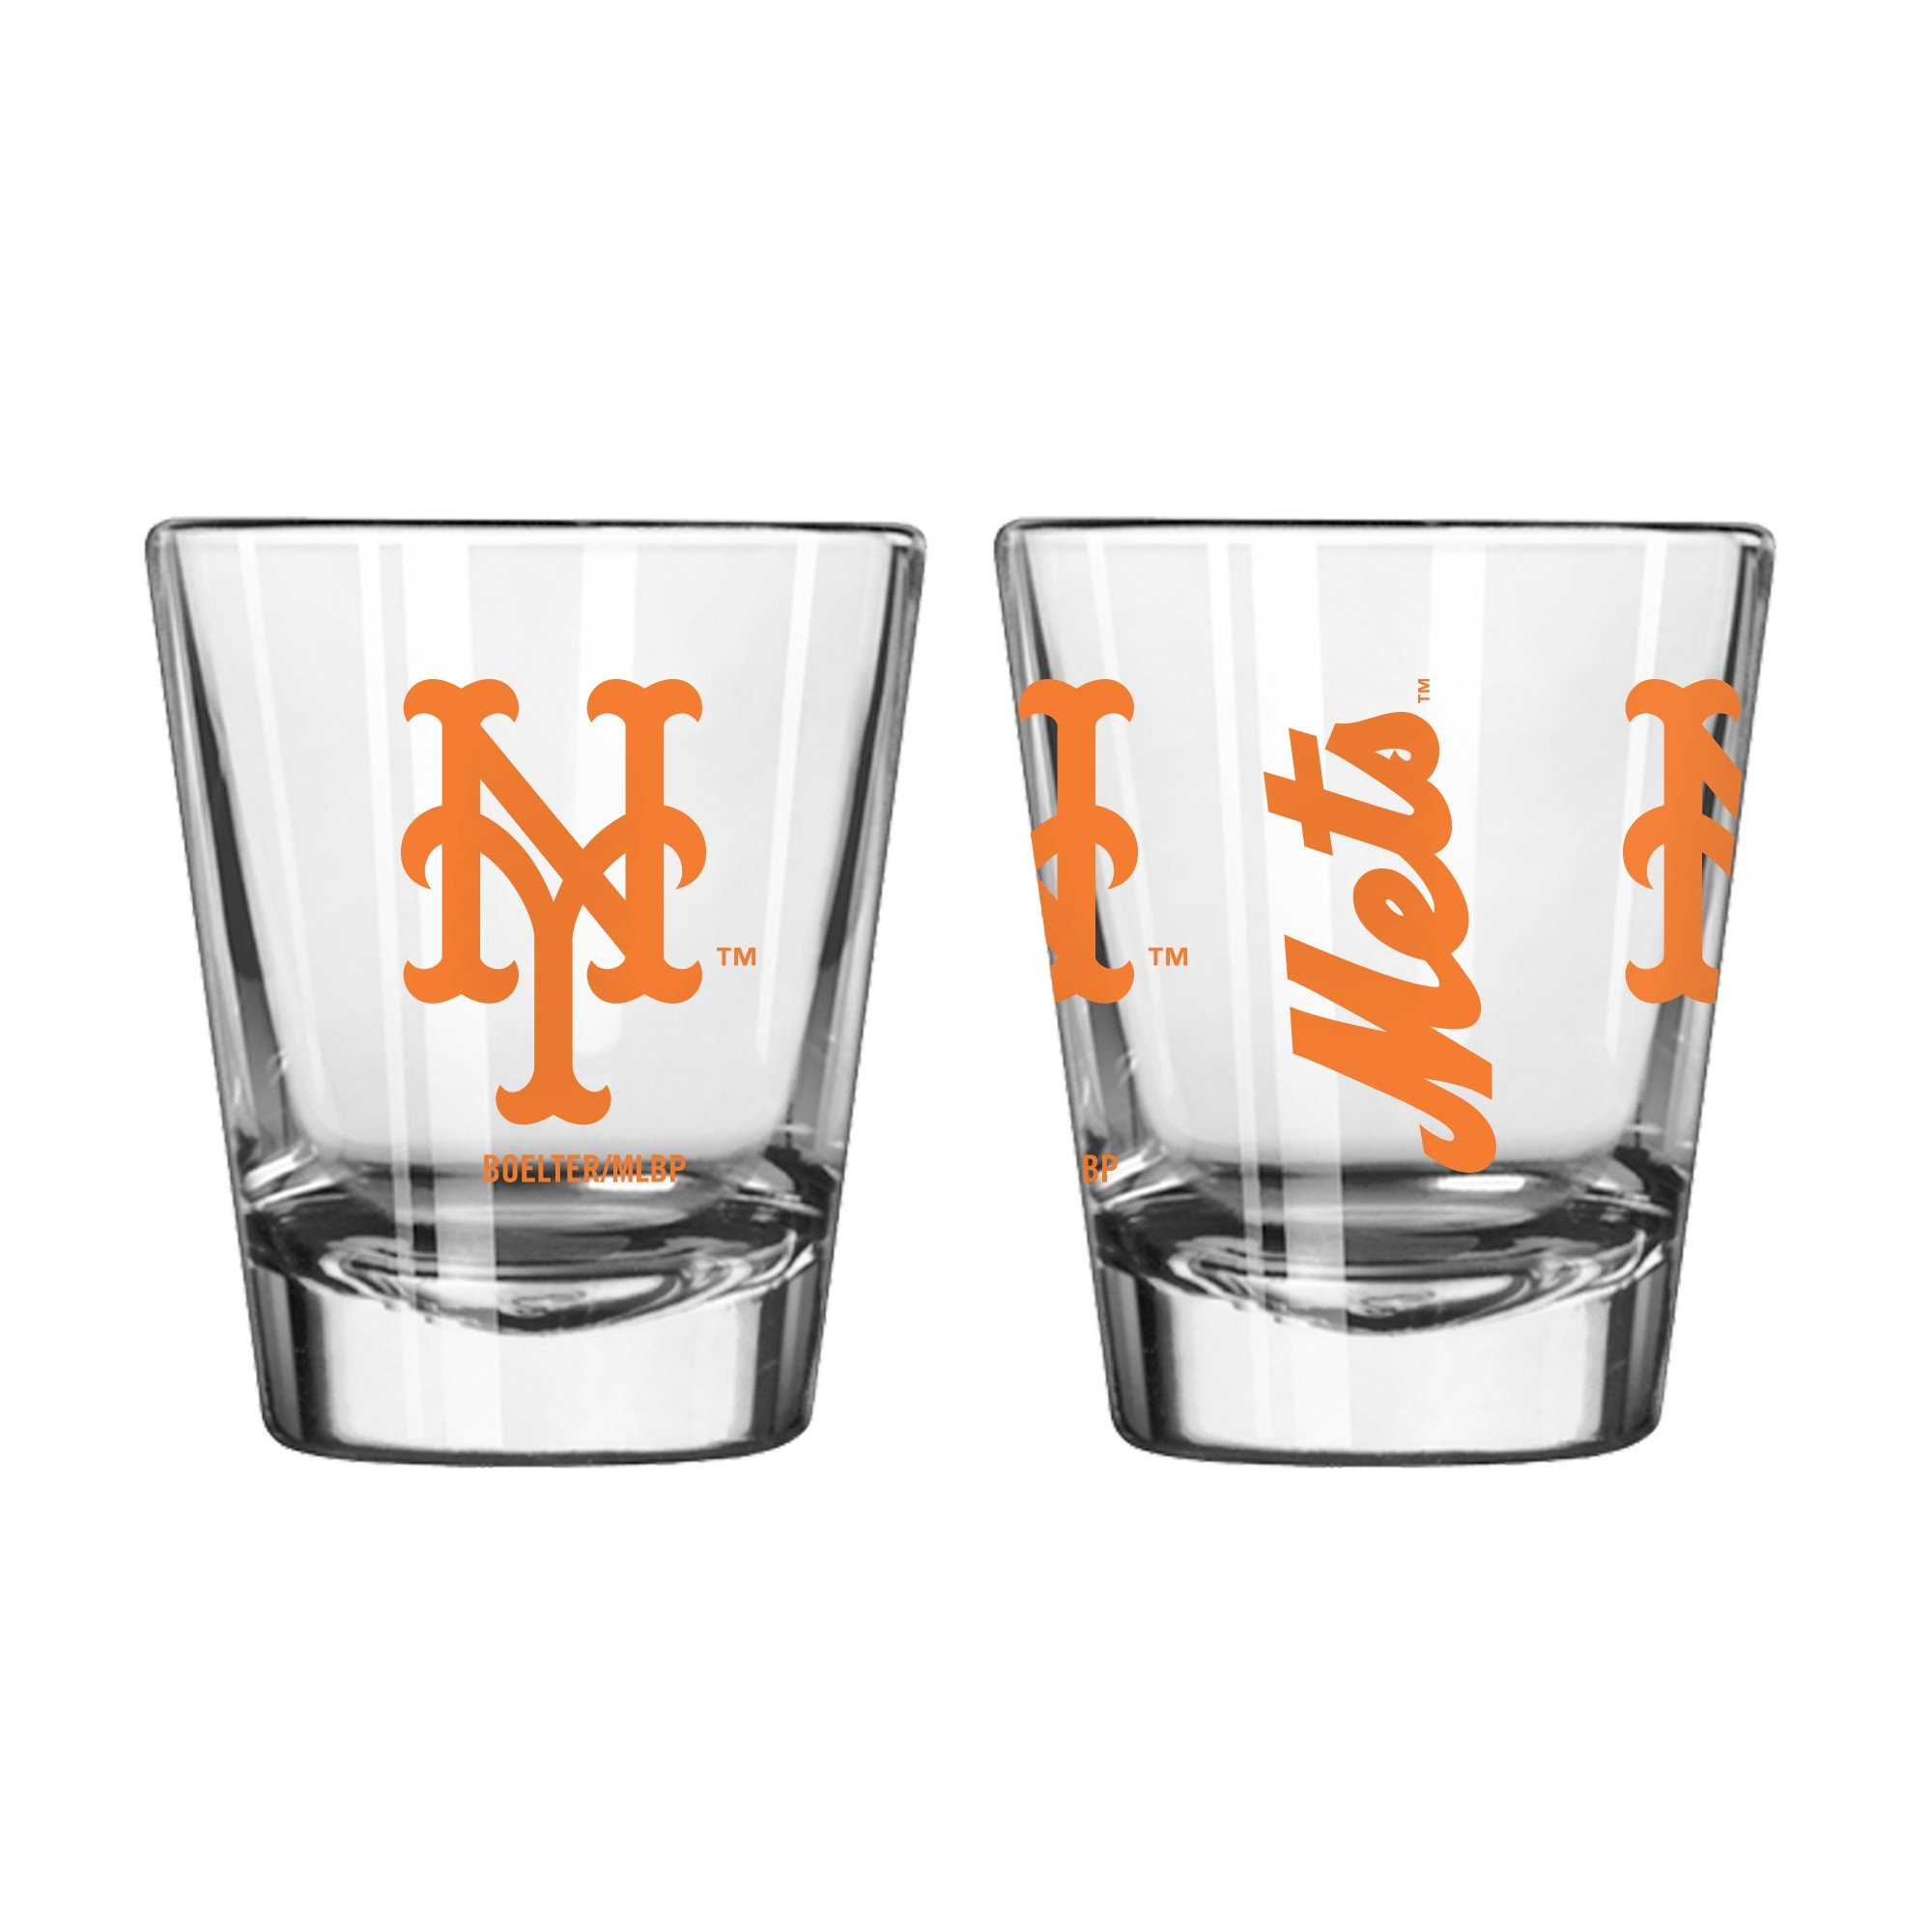 Official Fan Shop Authentic MLB Logo 2 oz Shot Glasses 2-Pack Bundle. Show Team Pride at home, your Bar or at the Tailgate. Gameday Shot Glasses for a goodnight (New York Mets)